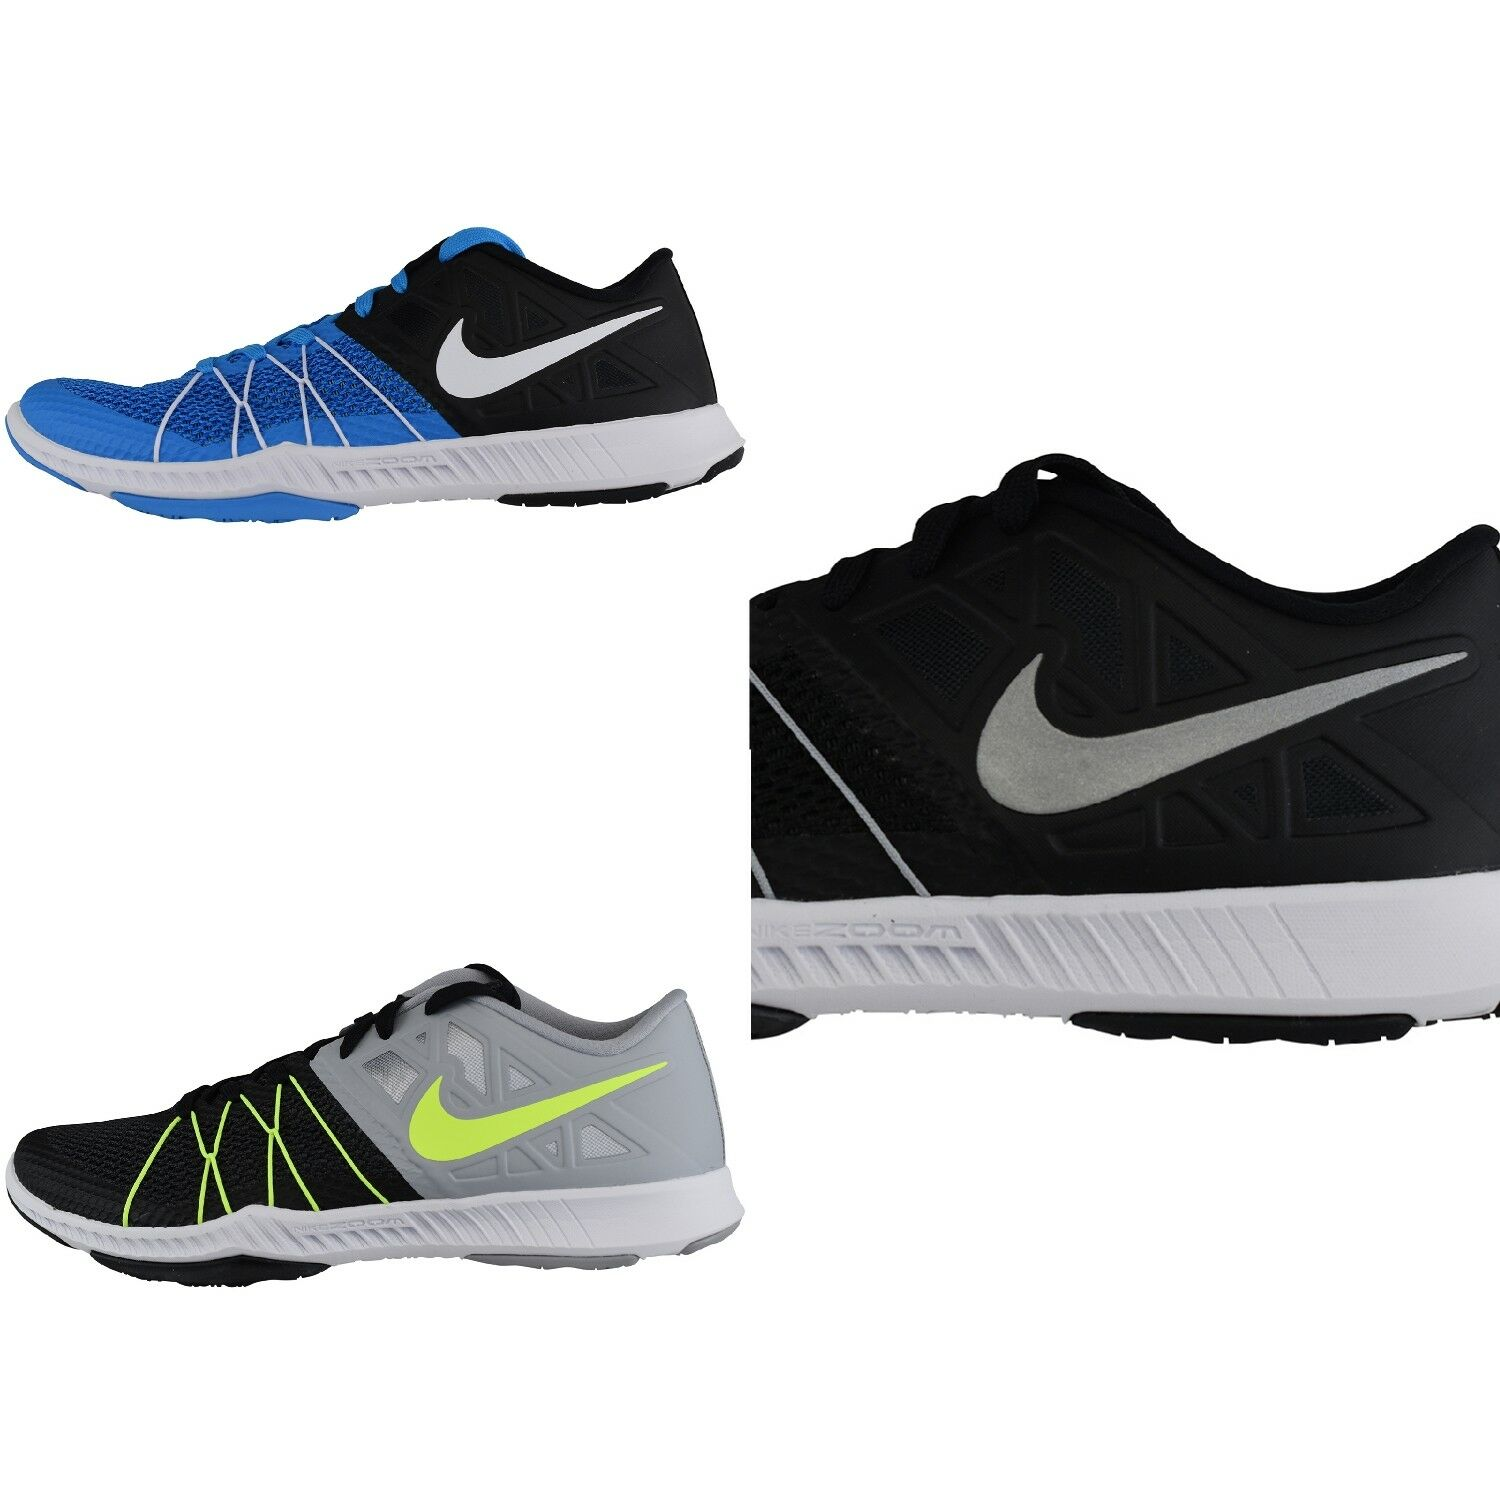 Nike Zoom Incredibly Fast Laufschuh Sportschuh Turnschuh Sneaker